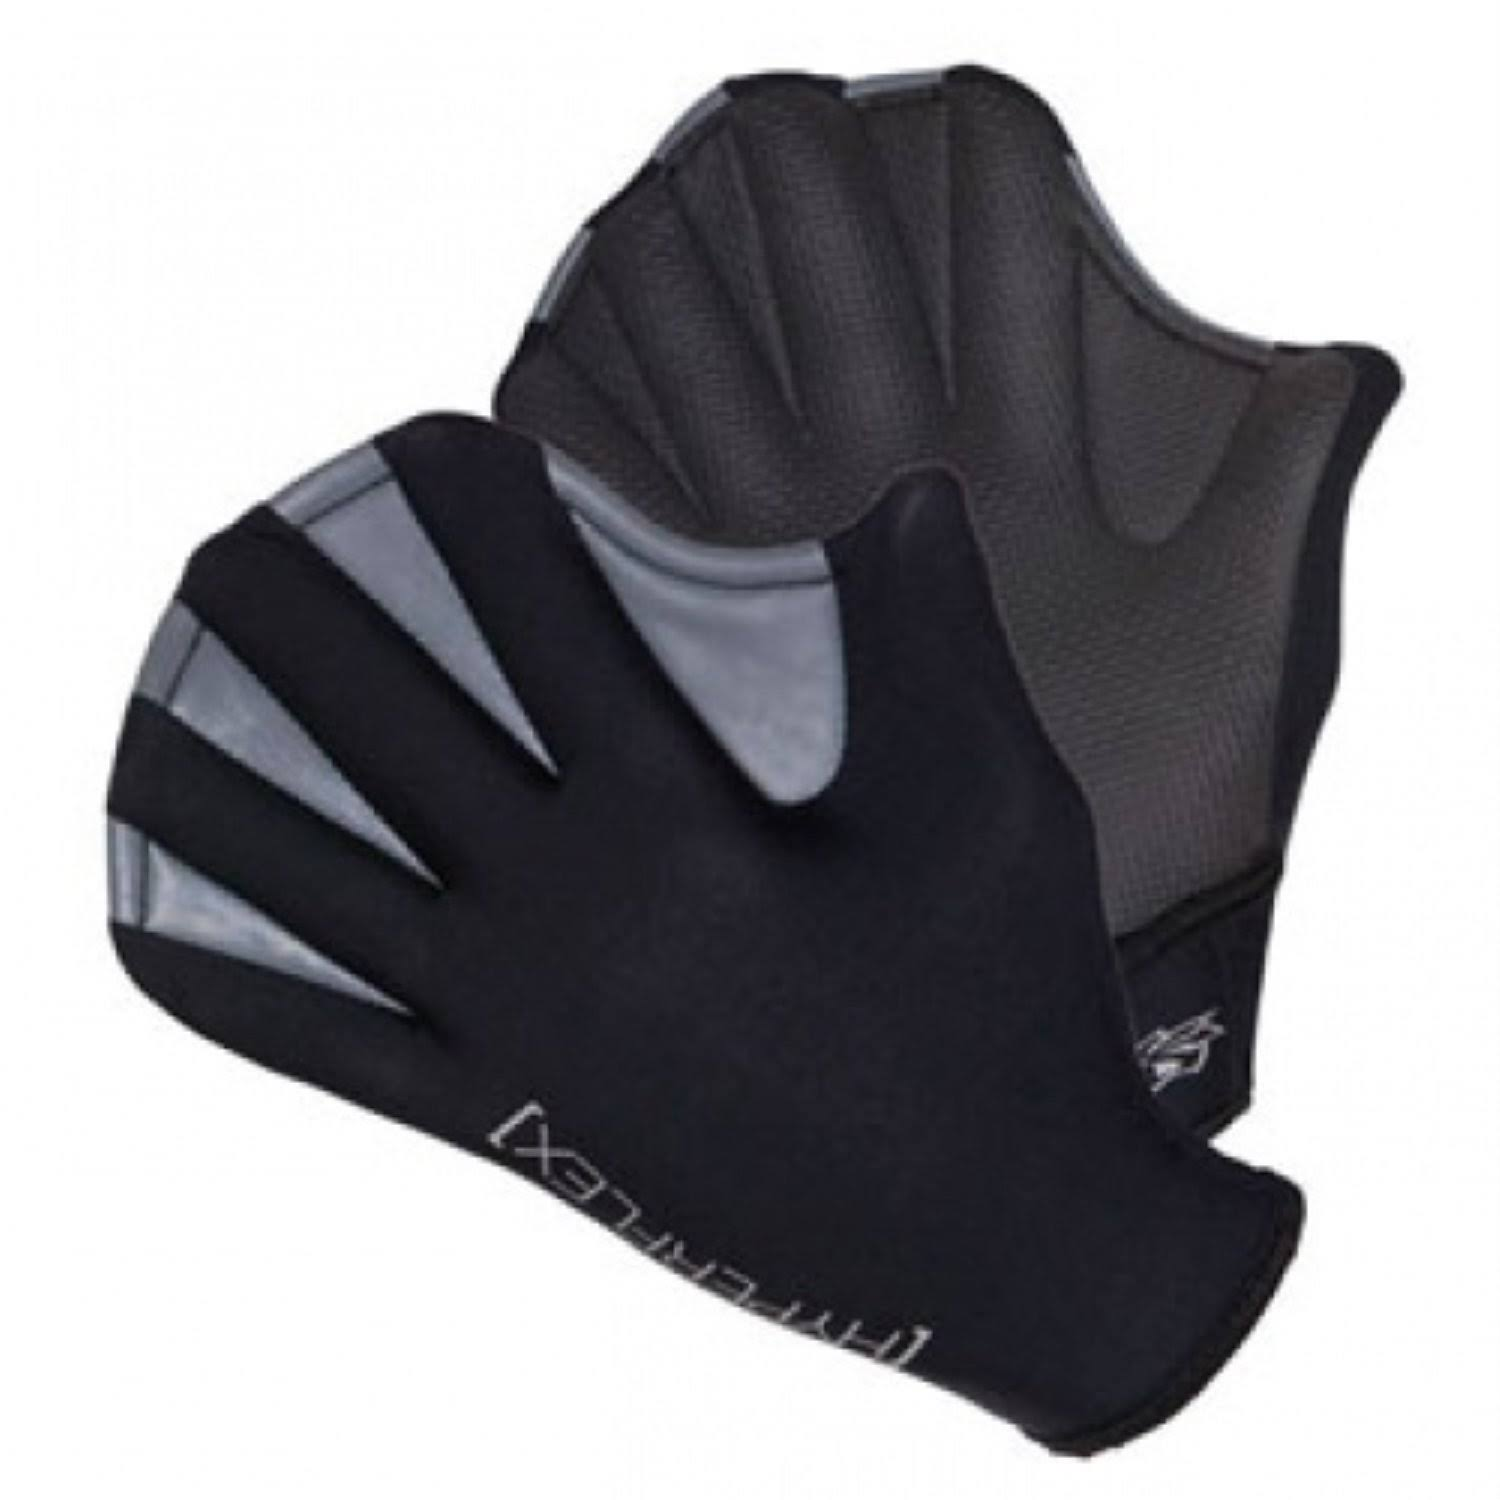 Hyperflex Men's Paddle Gloves - X Small/Small, 1.55mm